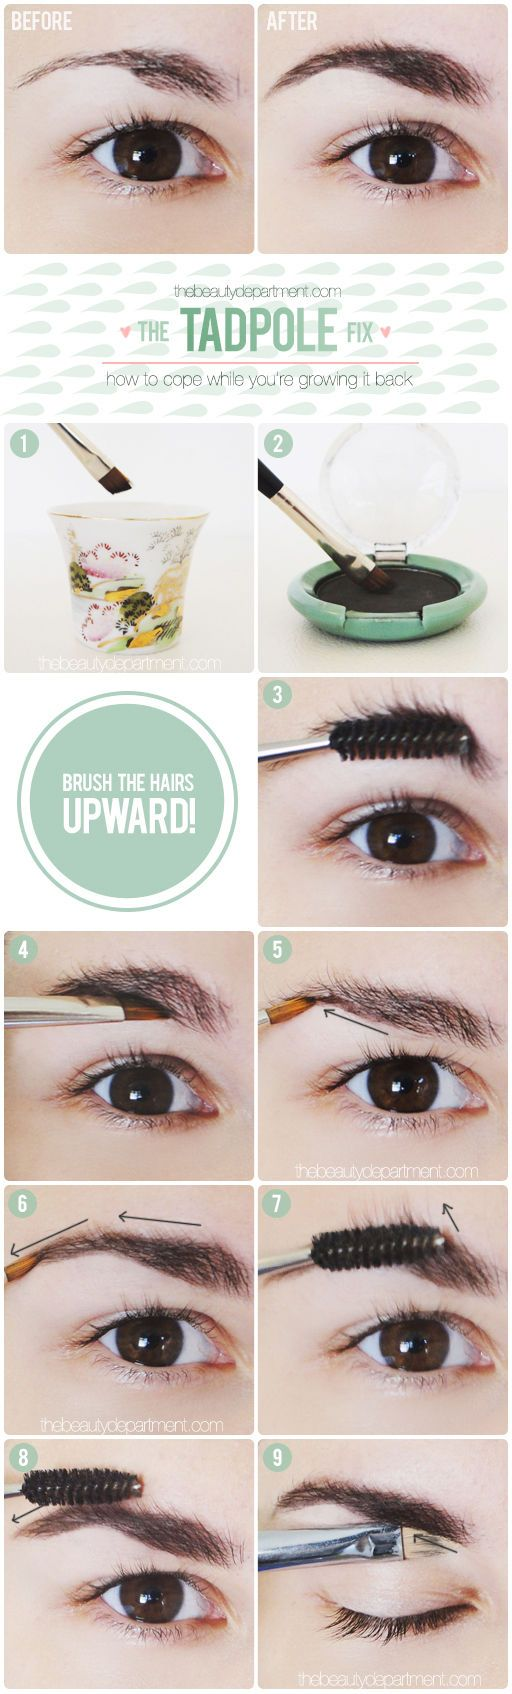 DIY Beauty Hack - How to disguise over plucked brows